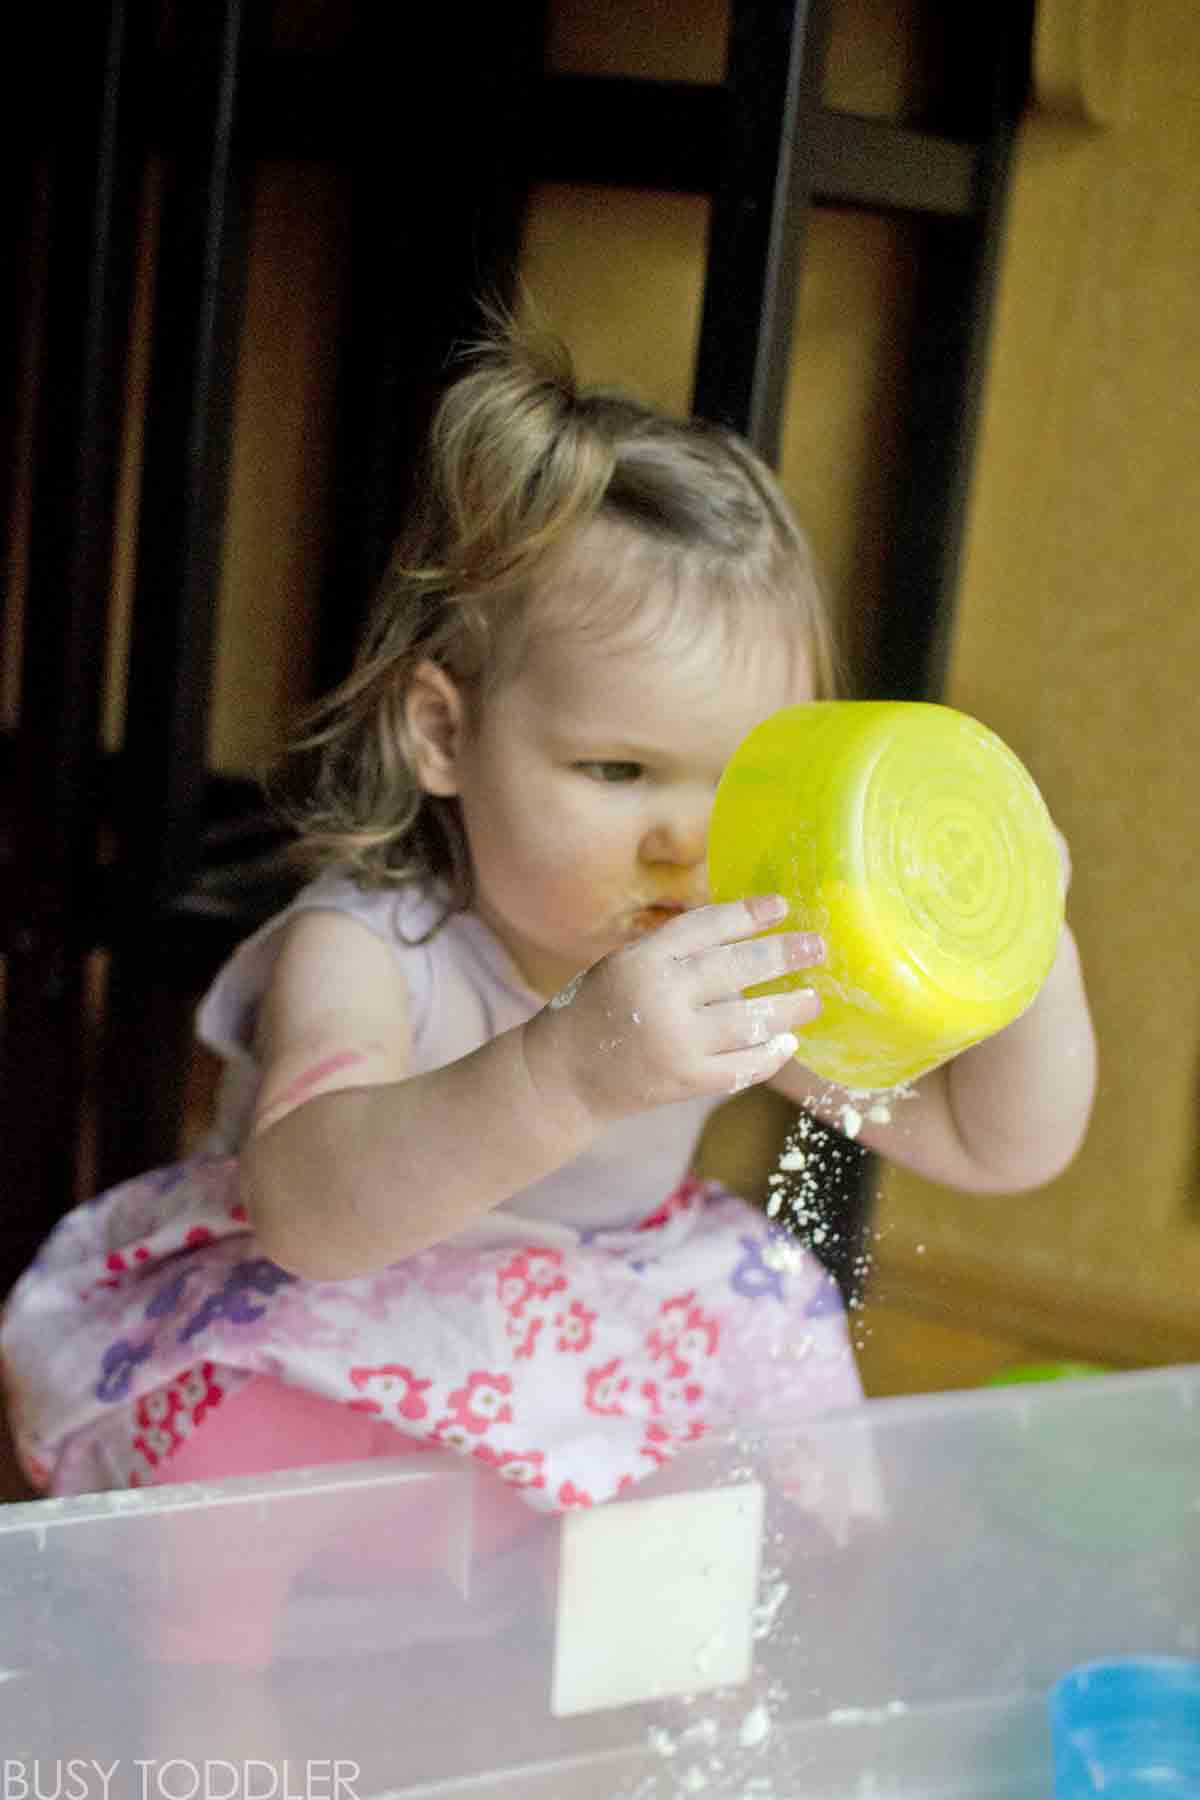 FLOUR BIN: The easiest toddler activity! Need something quick and easy for your toddler? Try this fast to prep indoor activity.